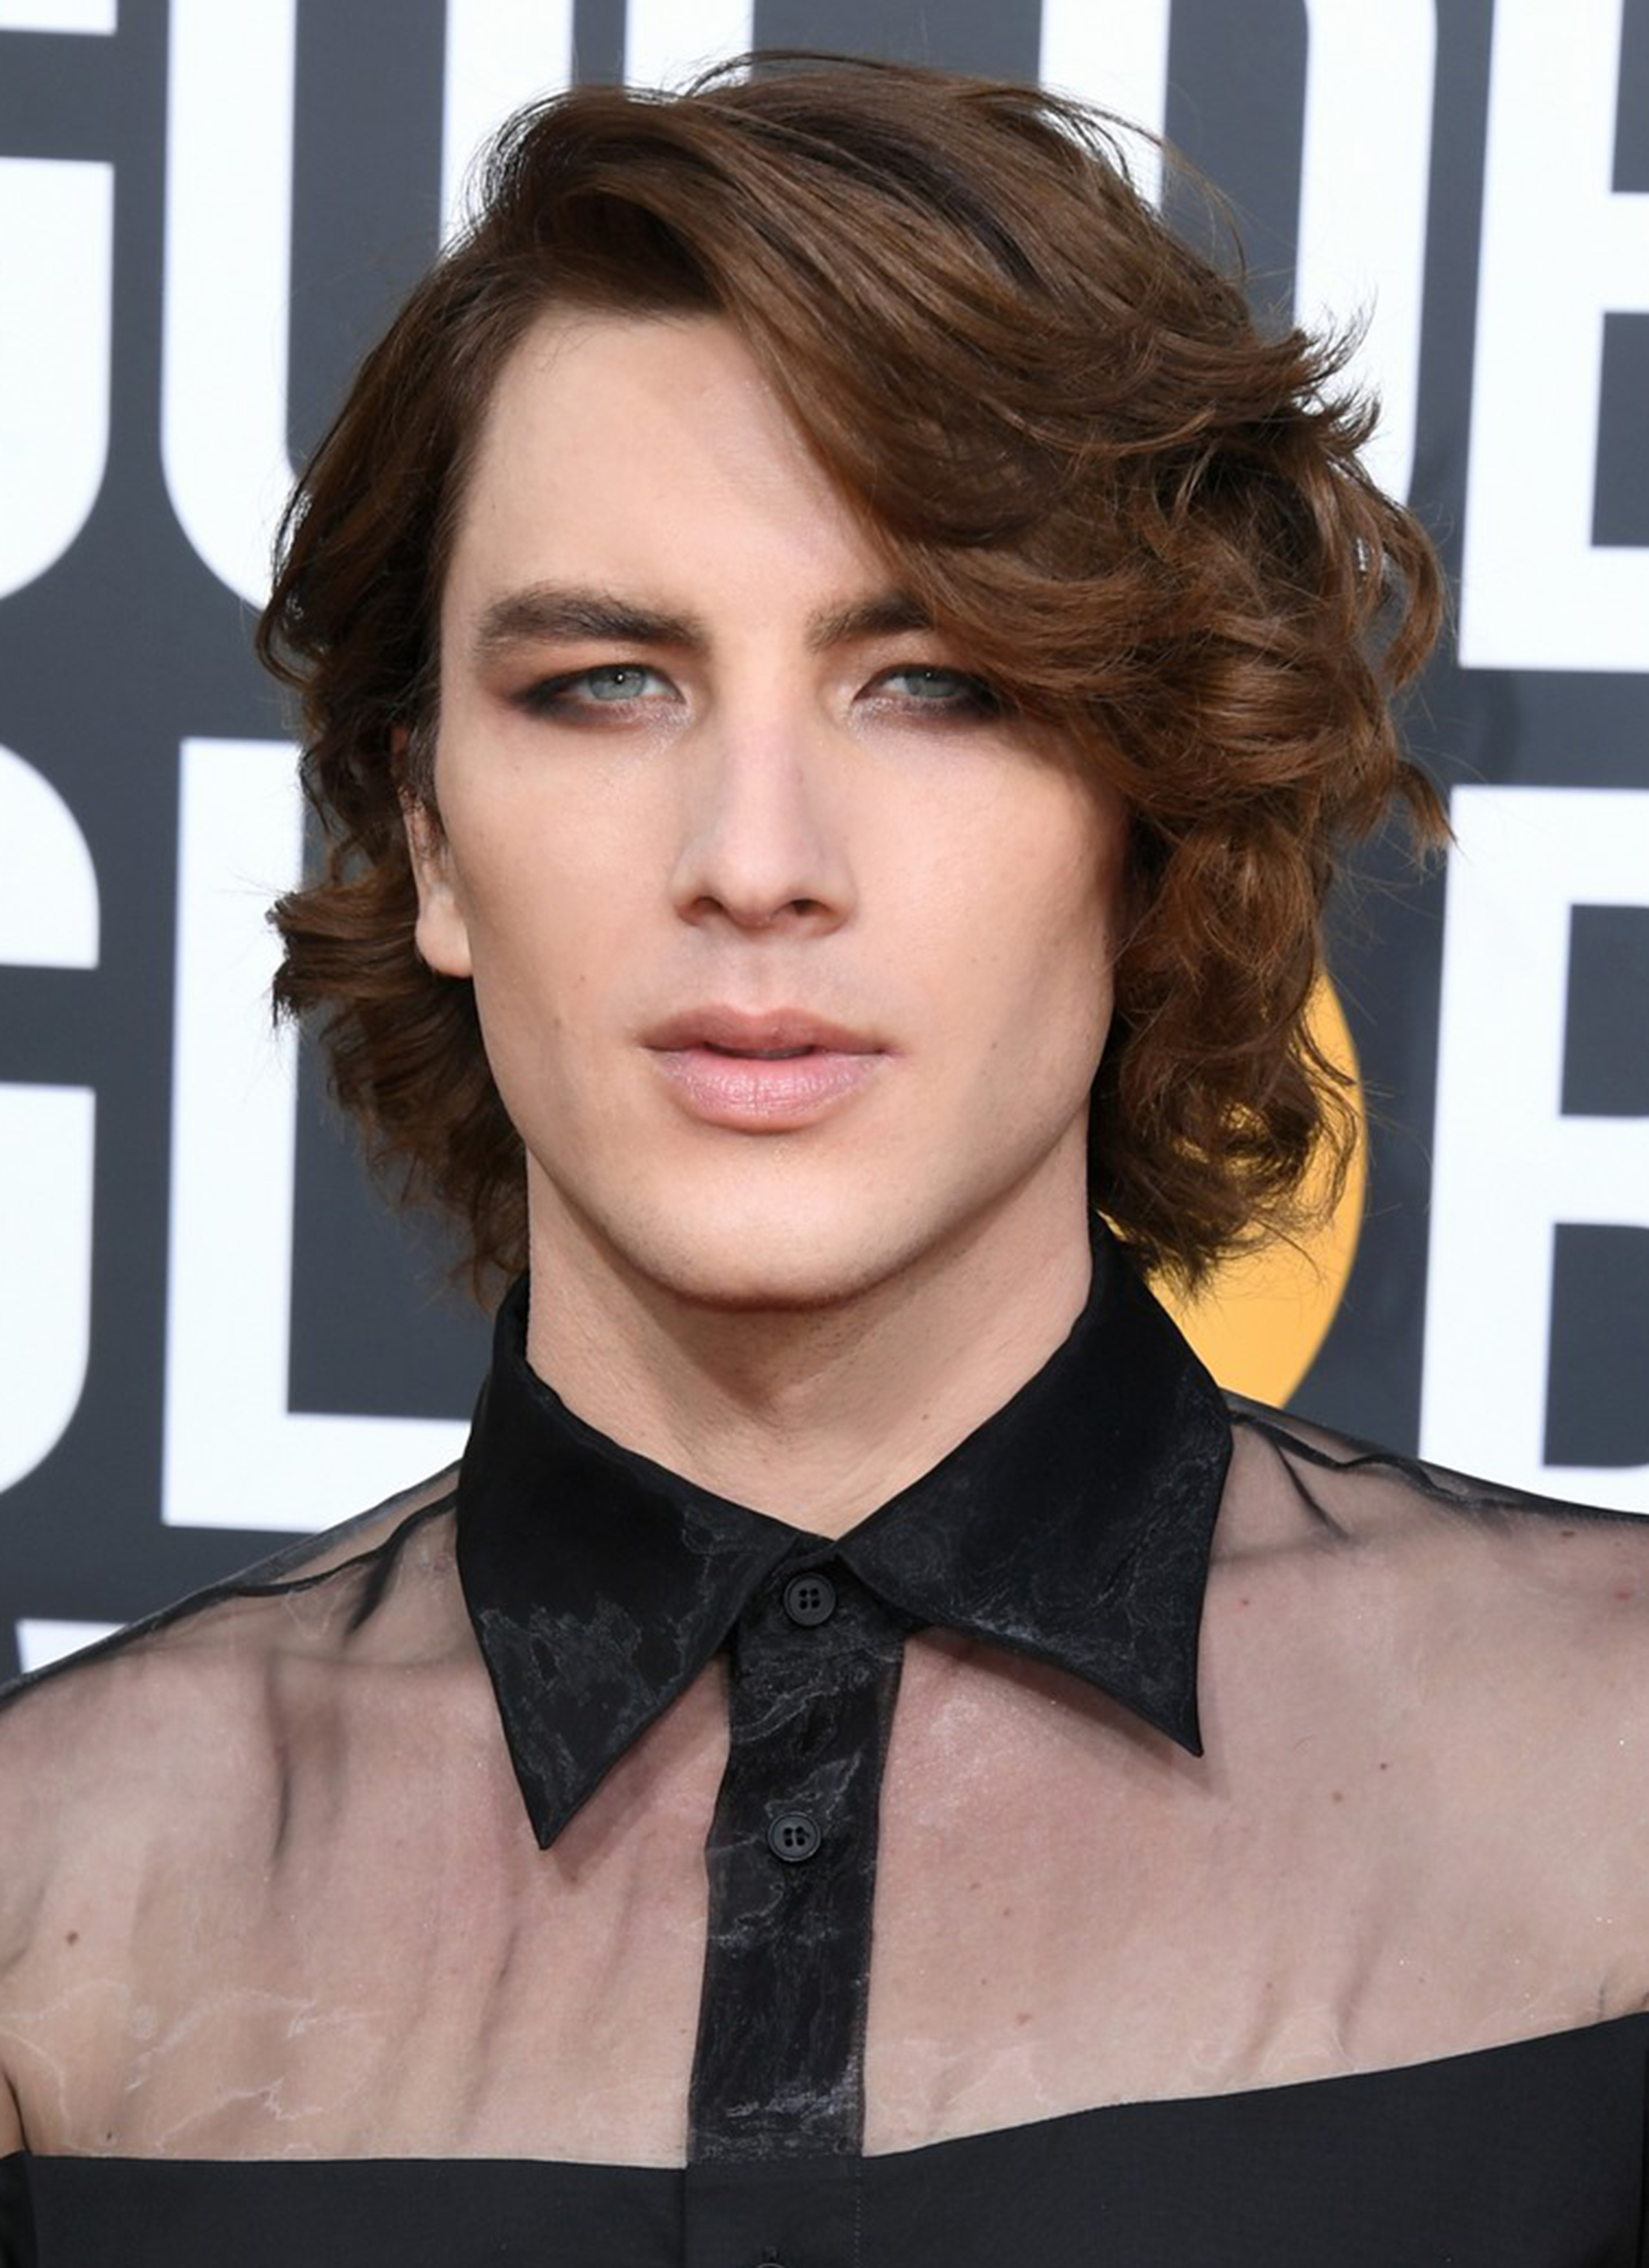 cody-fern-golden-globes-2019-03.jpg